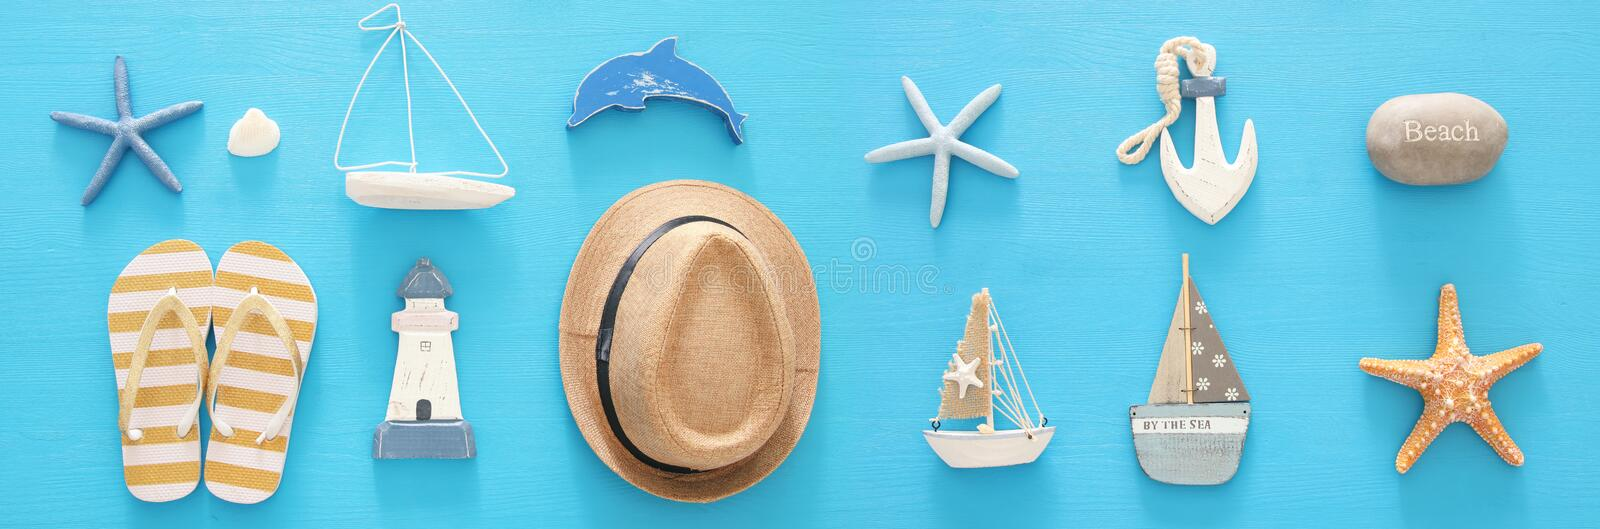 Nautical, vacation and travel banner with sea life style objects. Top view. Nautical, vacation and travel banner with sea life style objects. Top view royalty free stock images